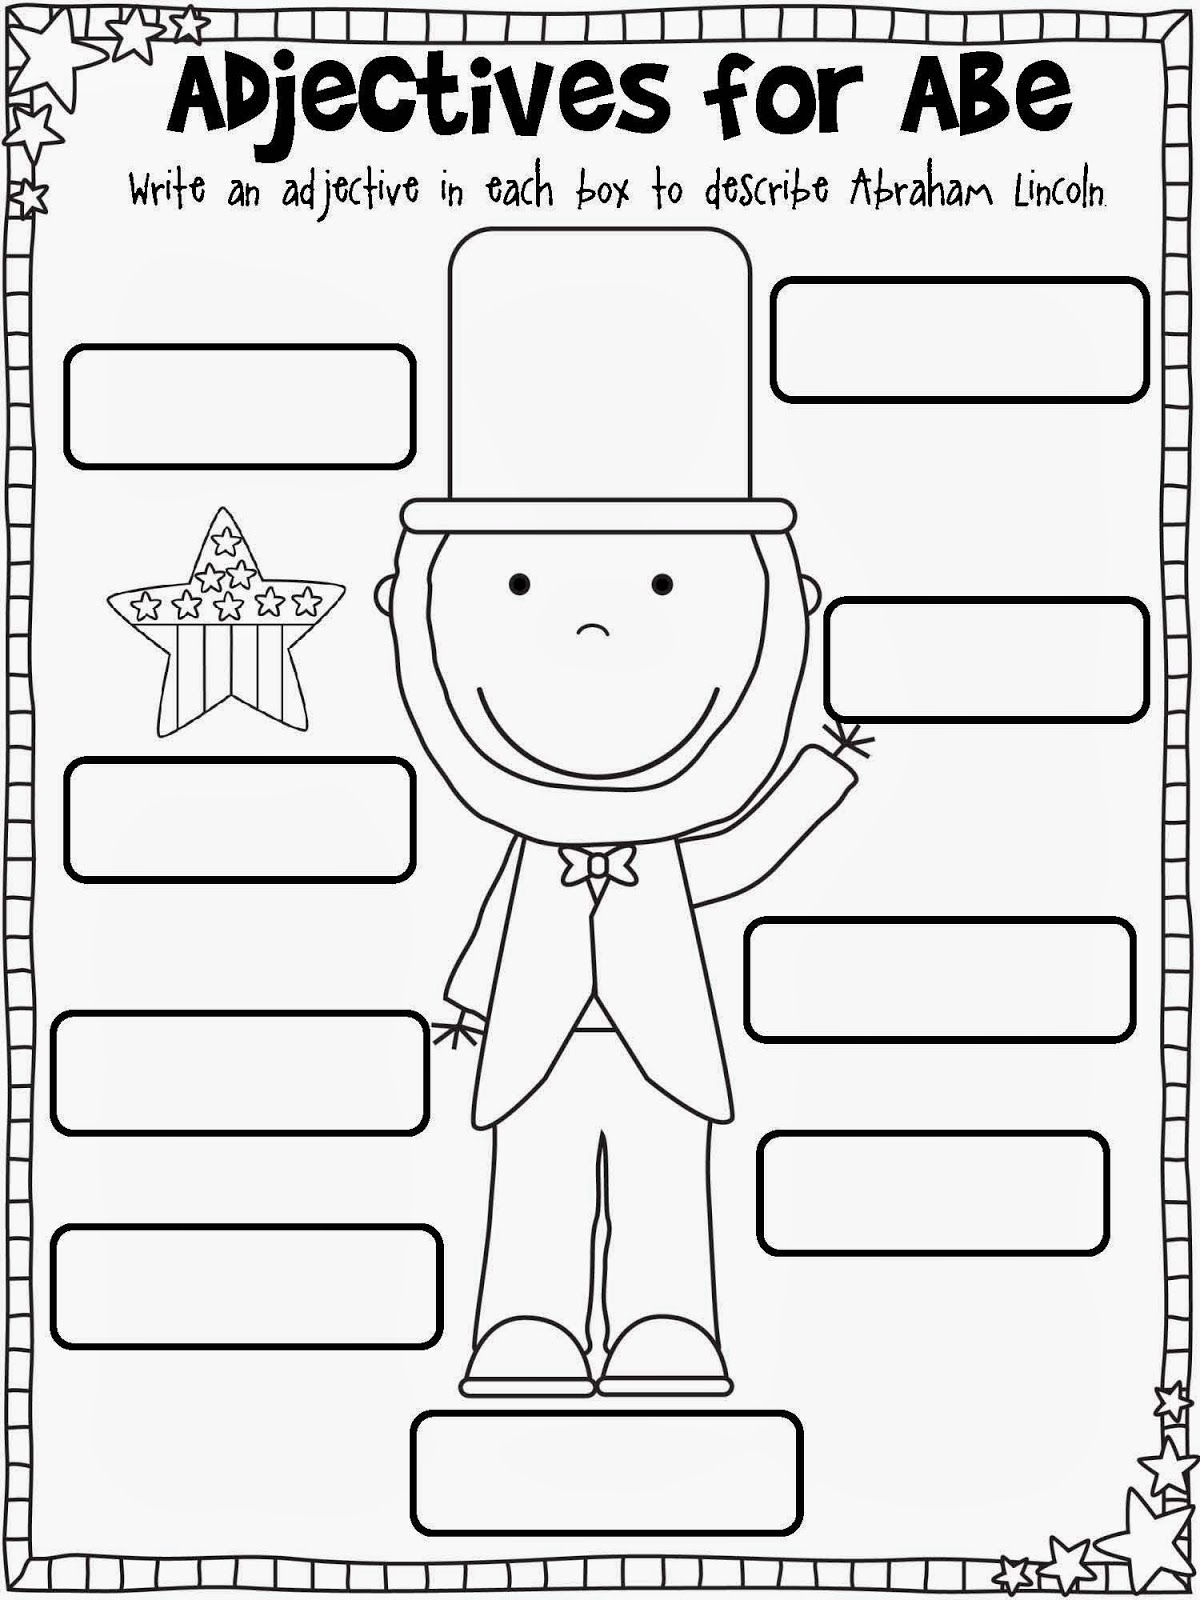 7th Grade Abraham Lincoln Worksheets   Printable Worksheets and Activities  for Teachers [ 1600 x 1200 Pixel ]